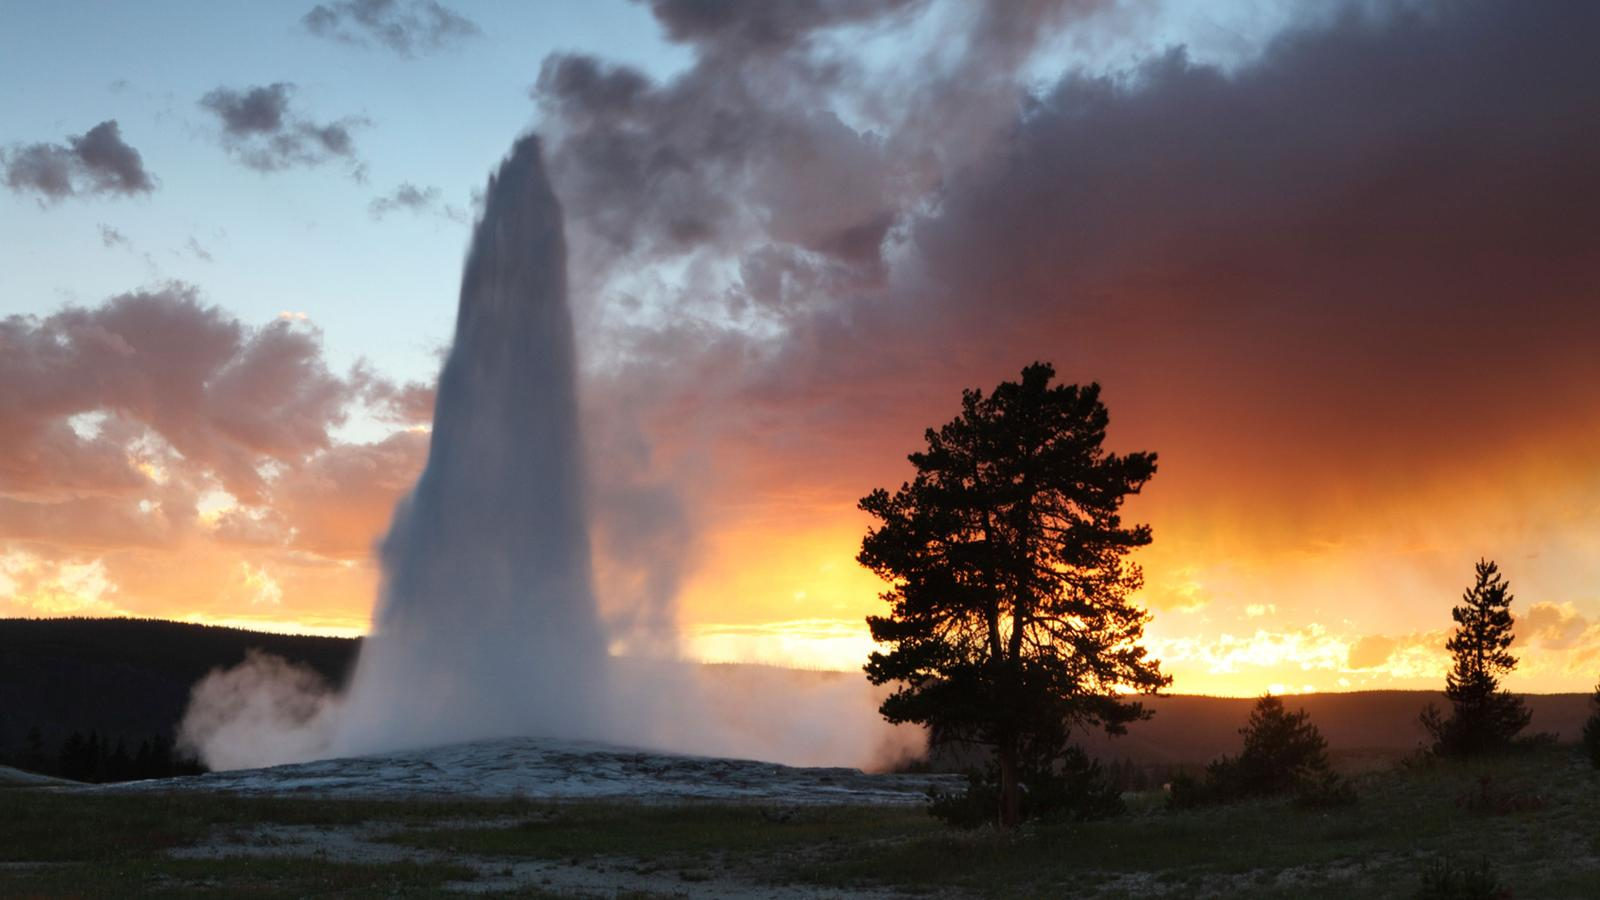 A geyser shooting hot water up in the air in Yellowstone, Wyoming